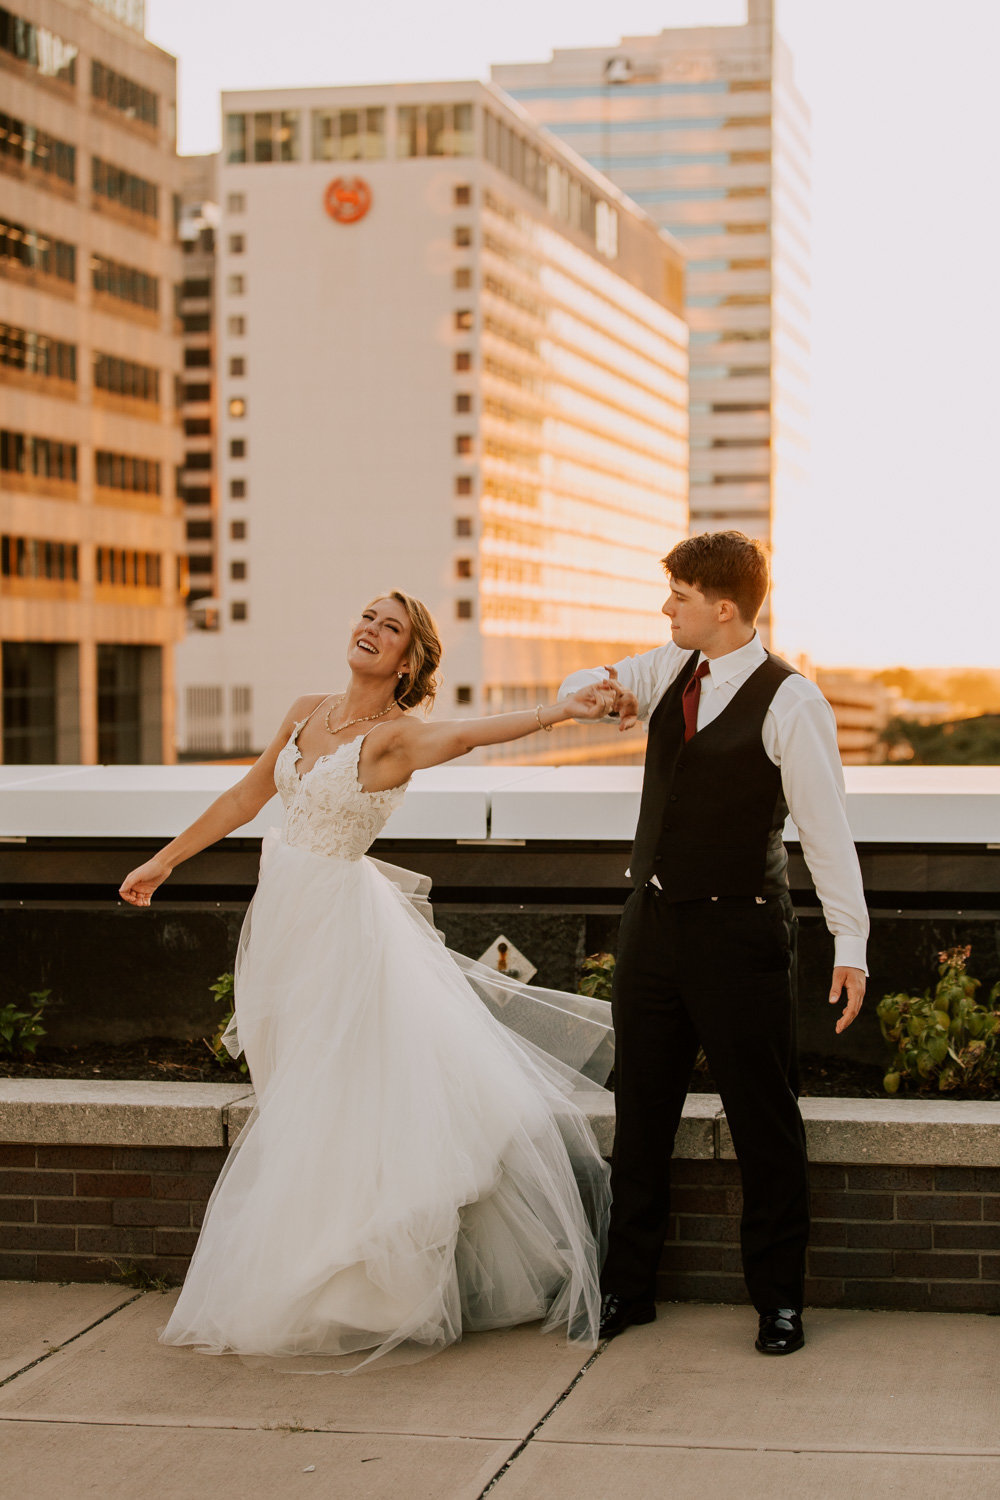 Rooftop-sunset-wedding-indianapolis-195